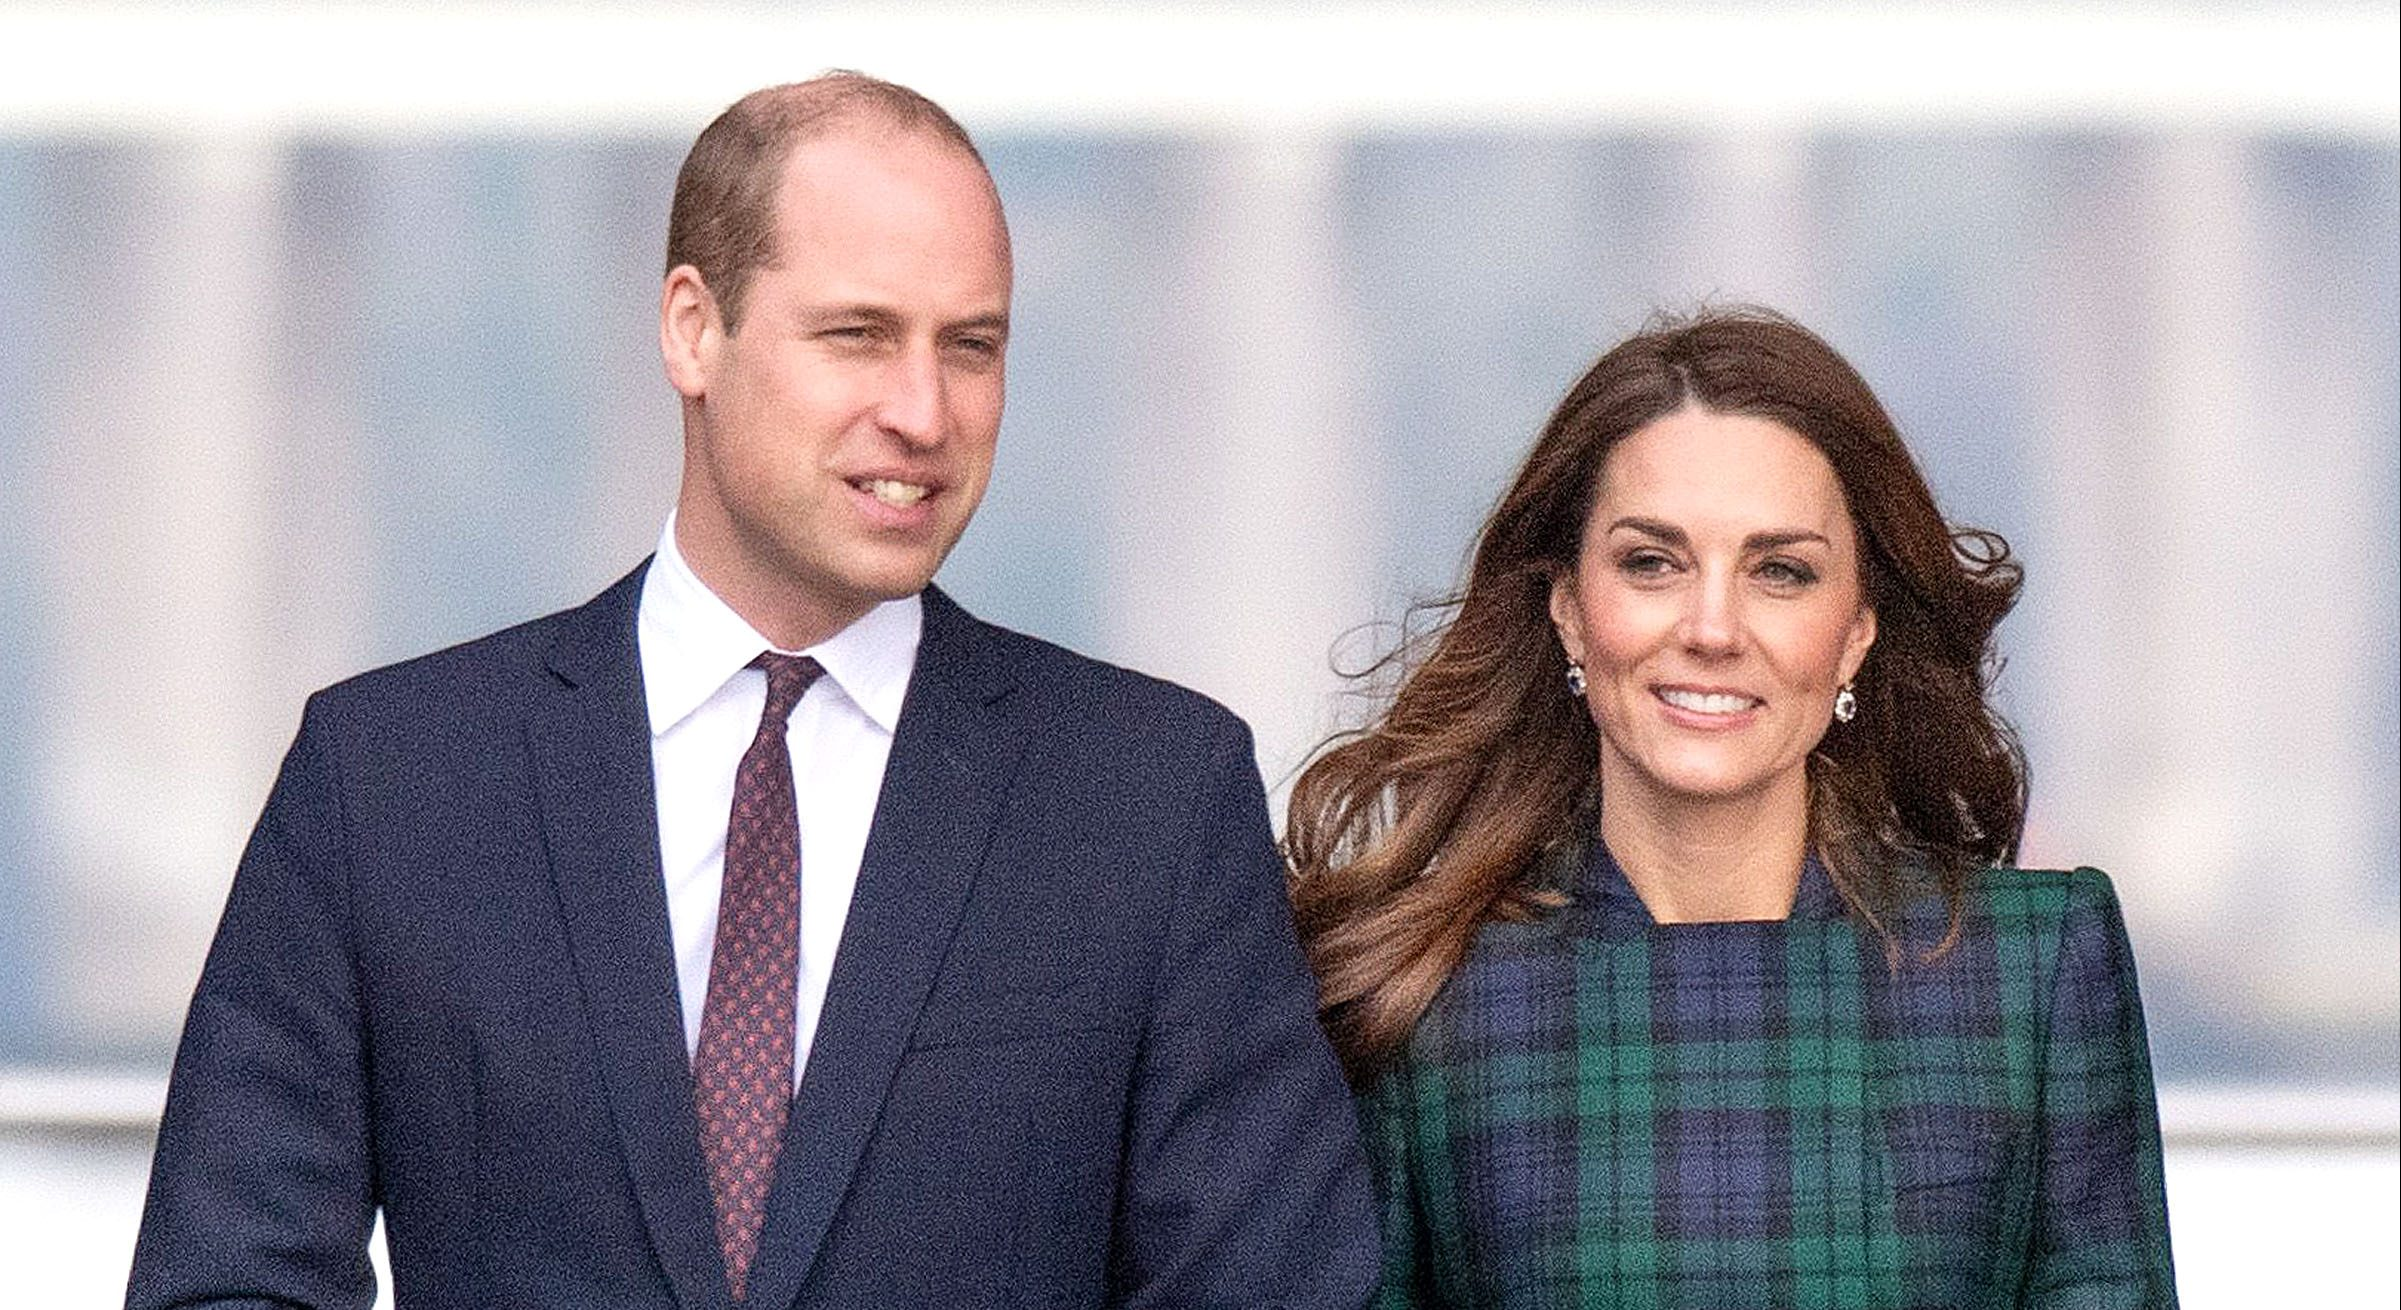 Prince William Reveals Princess Charlotte's Latest Love